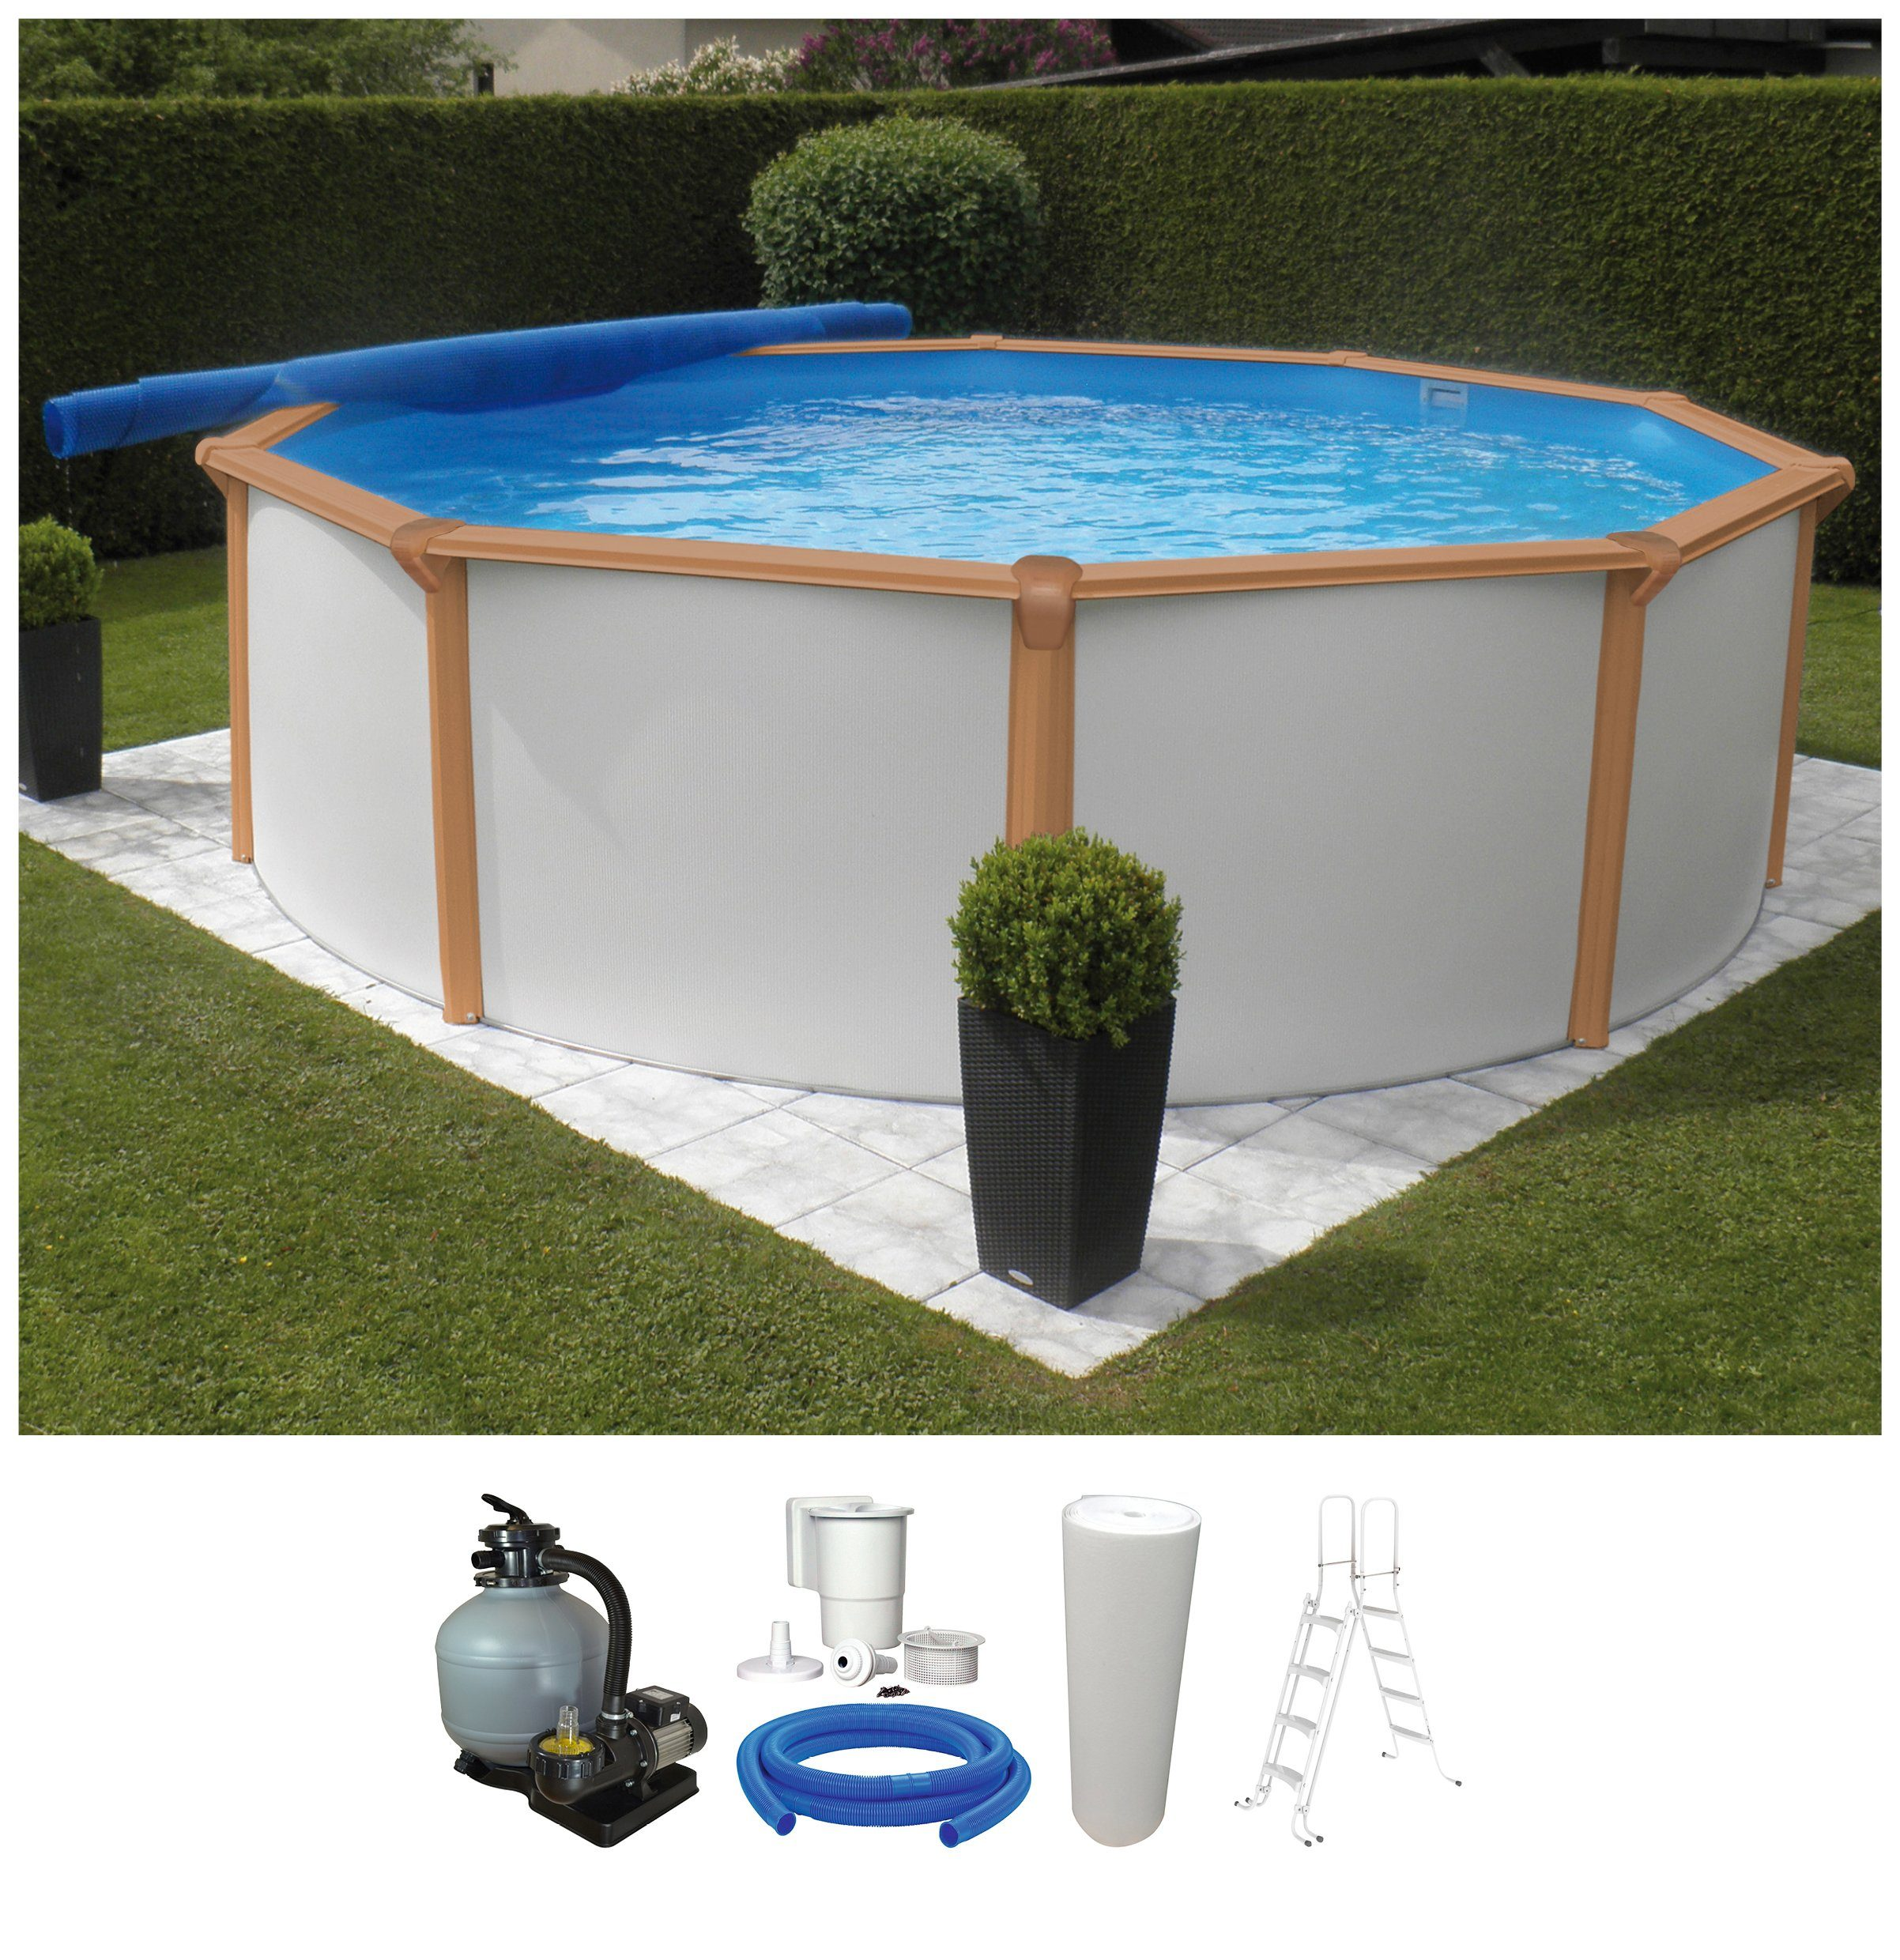 Schwimmbad Sandfilteranlage Gebraucht Poolzubehr Intex Sandfilter M Pumpe Filter Pool Intex With